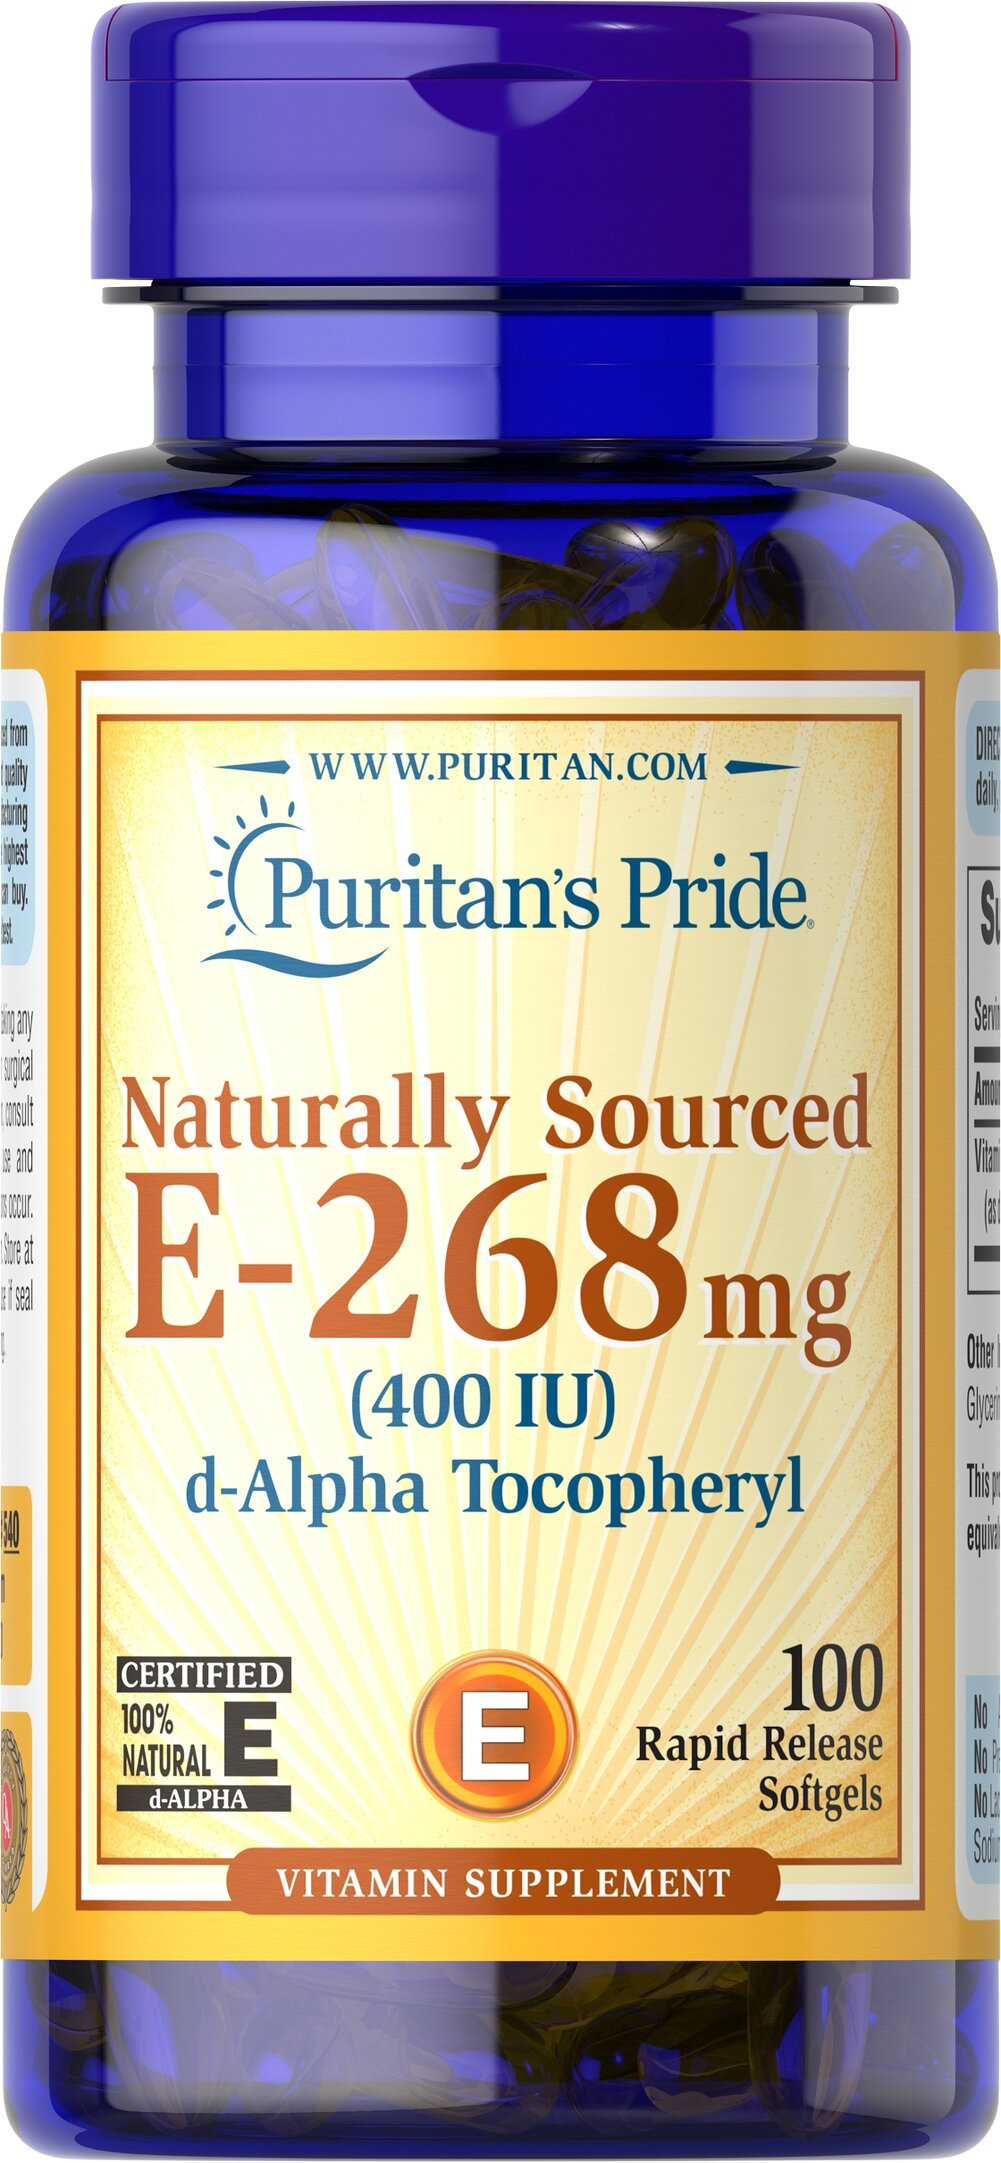 Vitamin E-400 iu 100% Natural <p><strong>Vitamin E</strong> is a potent antioxidant that helps fight free radicals.** Studies have shown that oxidative stress caused by free radicals may contribute to the premature aging of cells.** Vitamin E also promotes immune function and helps support cardiovascular health.** Our Vitamin E is 100% natural and comes in a convenient to use softgel.</p> 100 Softgels 400 IU $16.49